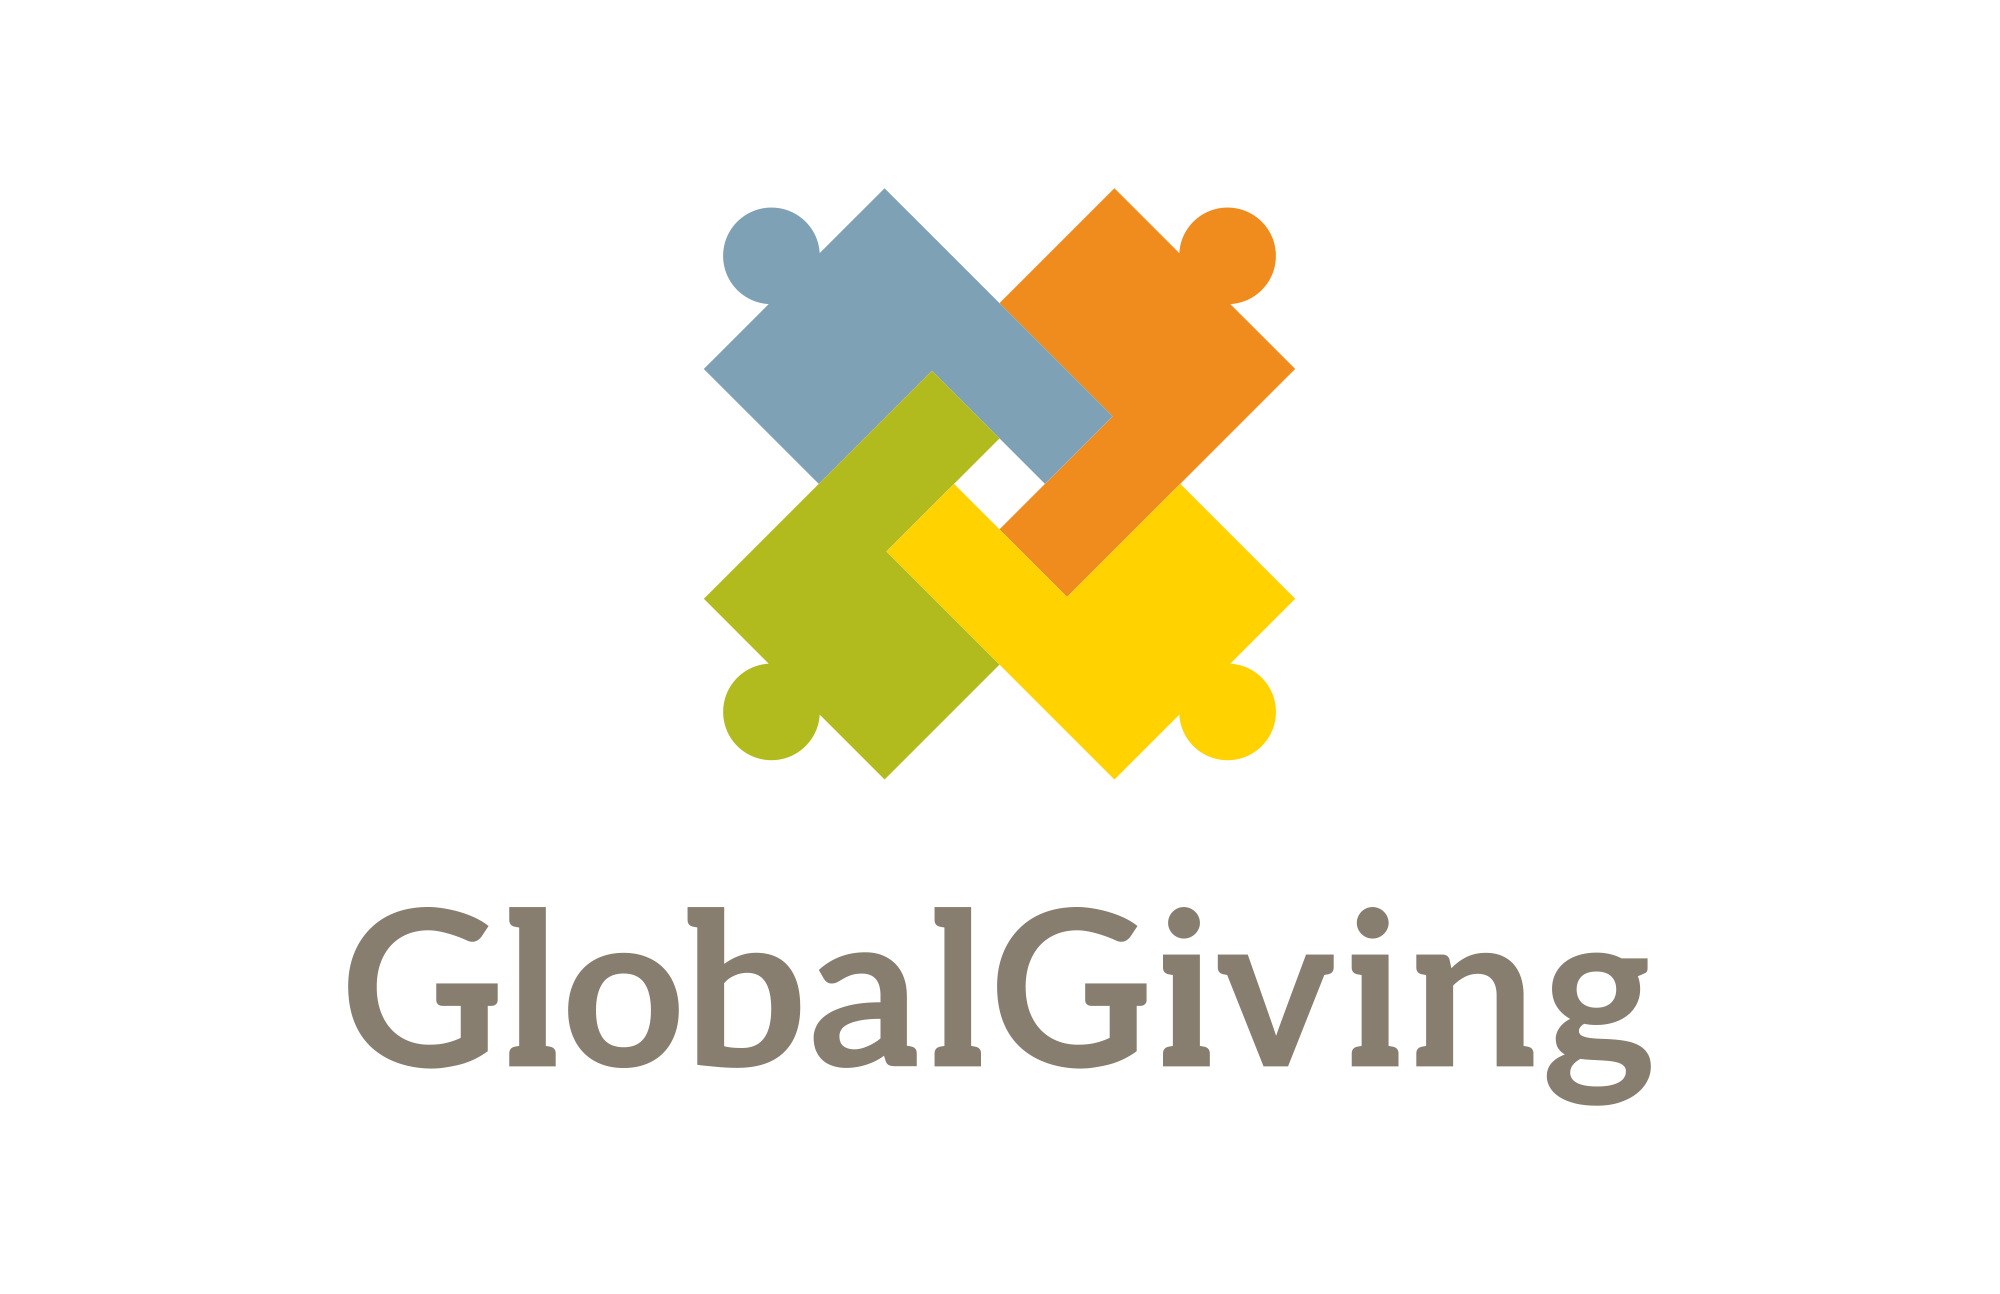 Fundraiser clipart ngos. Globalgiving donate to charity